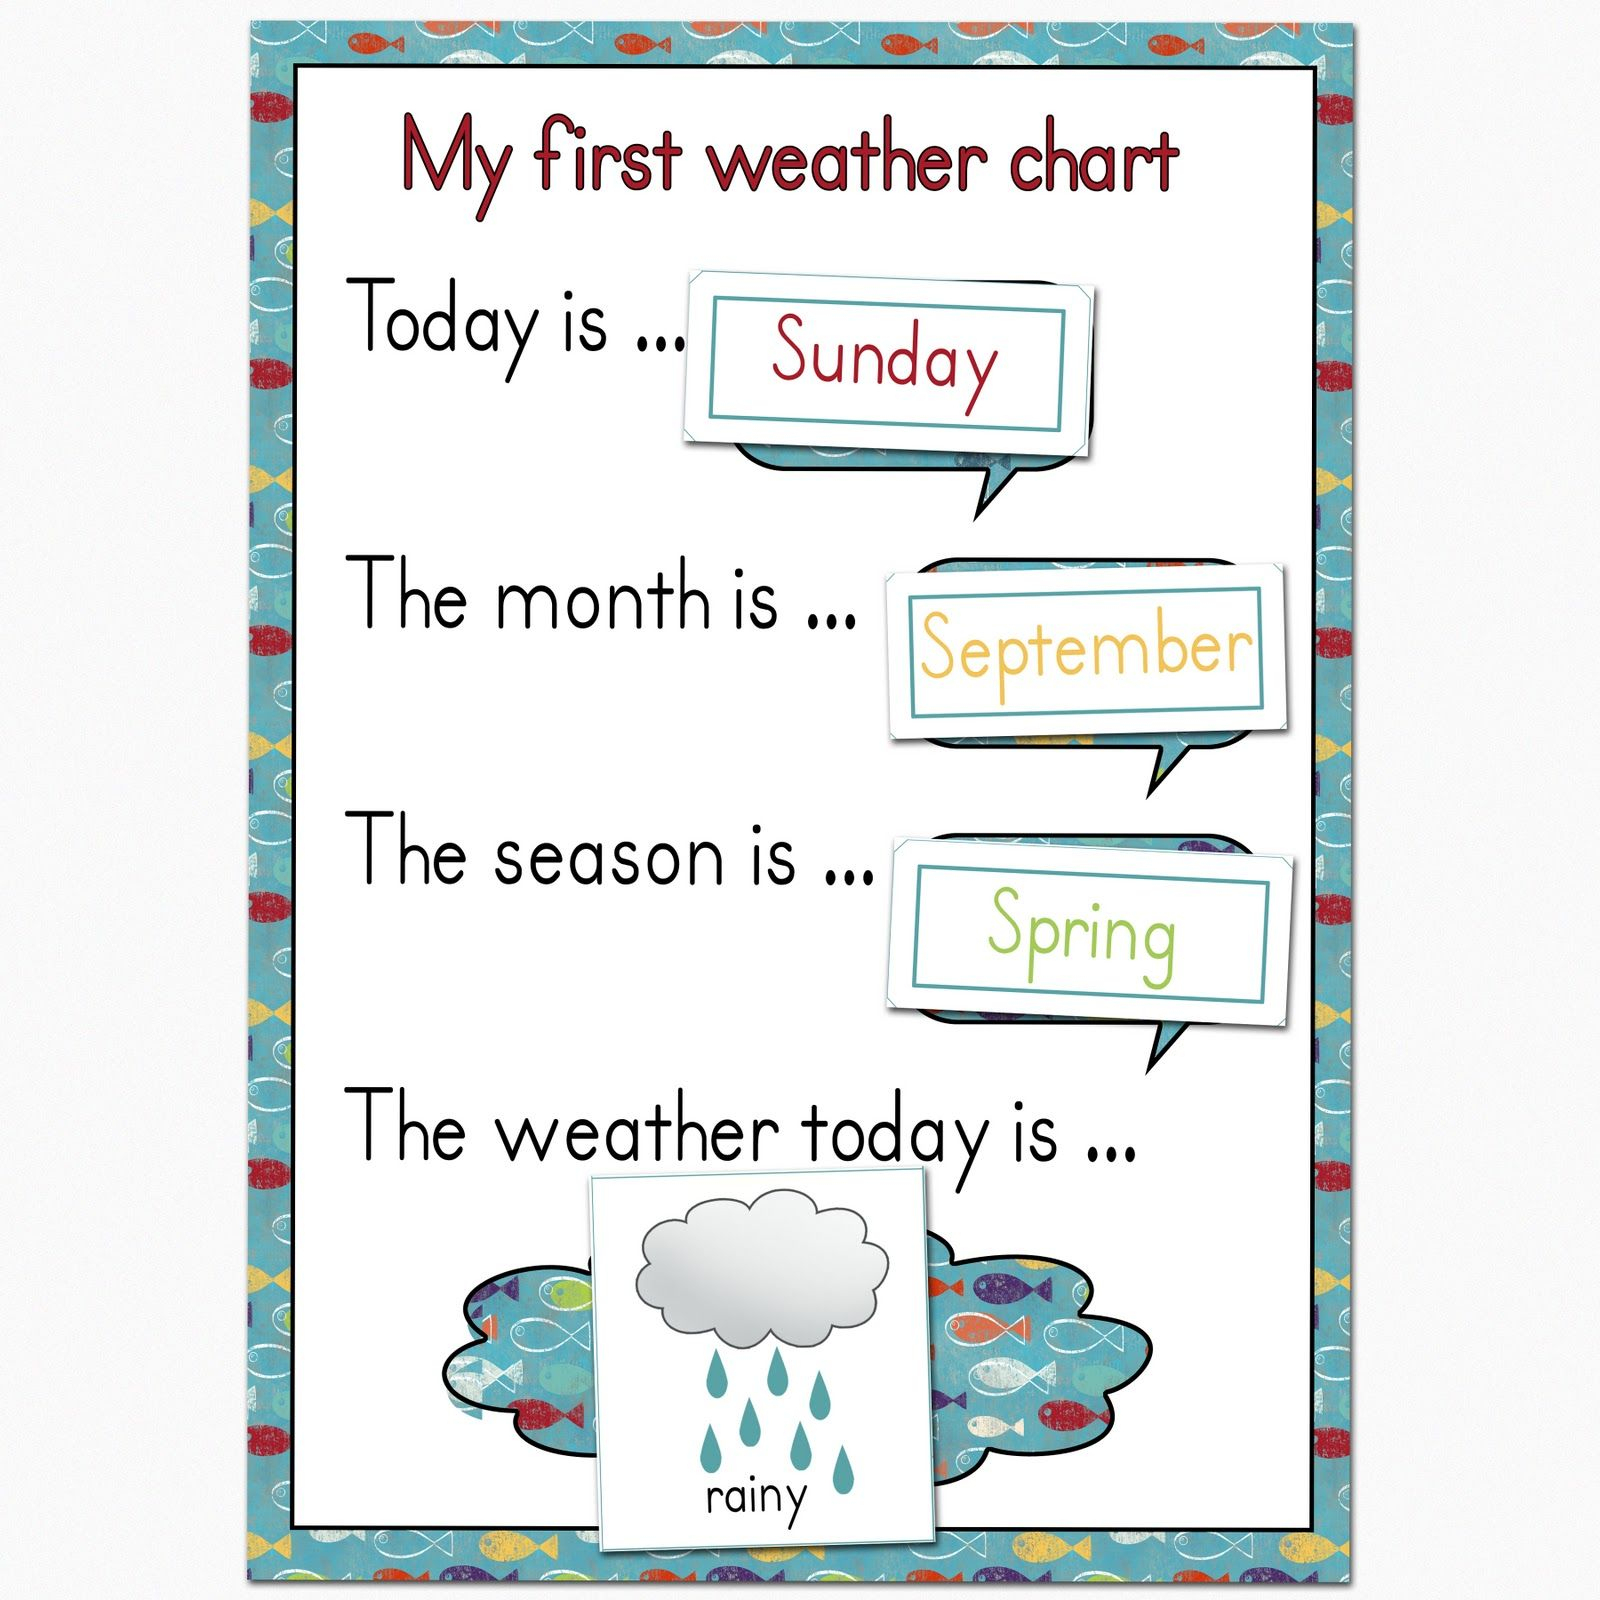 Preschool Weather Chart | Plan To Keep Mine On The Fridge, And Use - Free Printable Weather Chart For Preschool